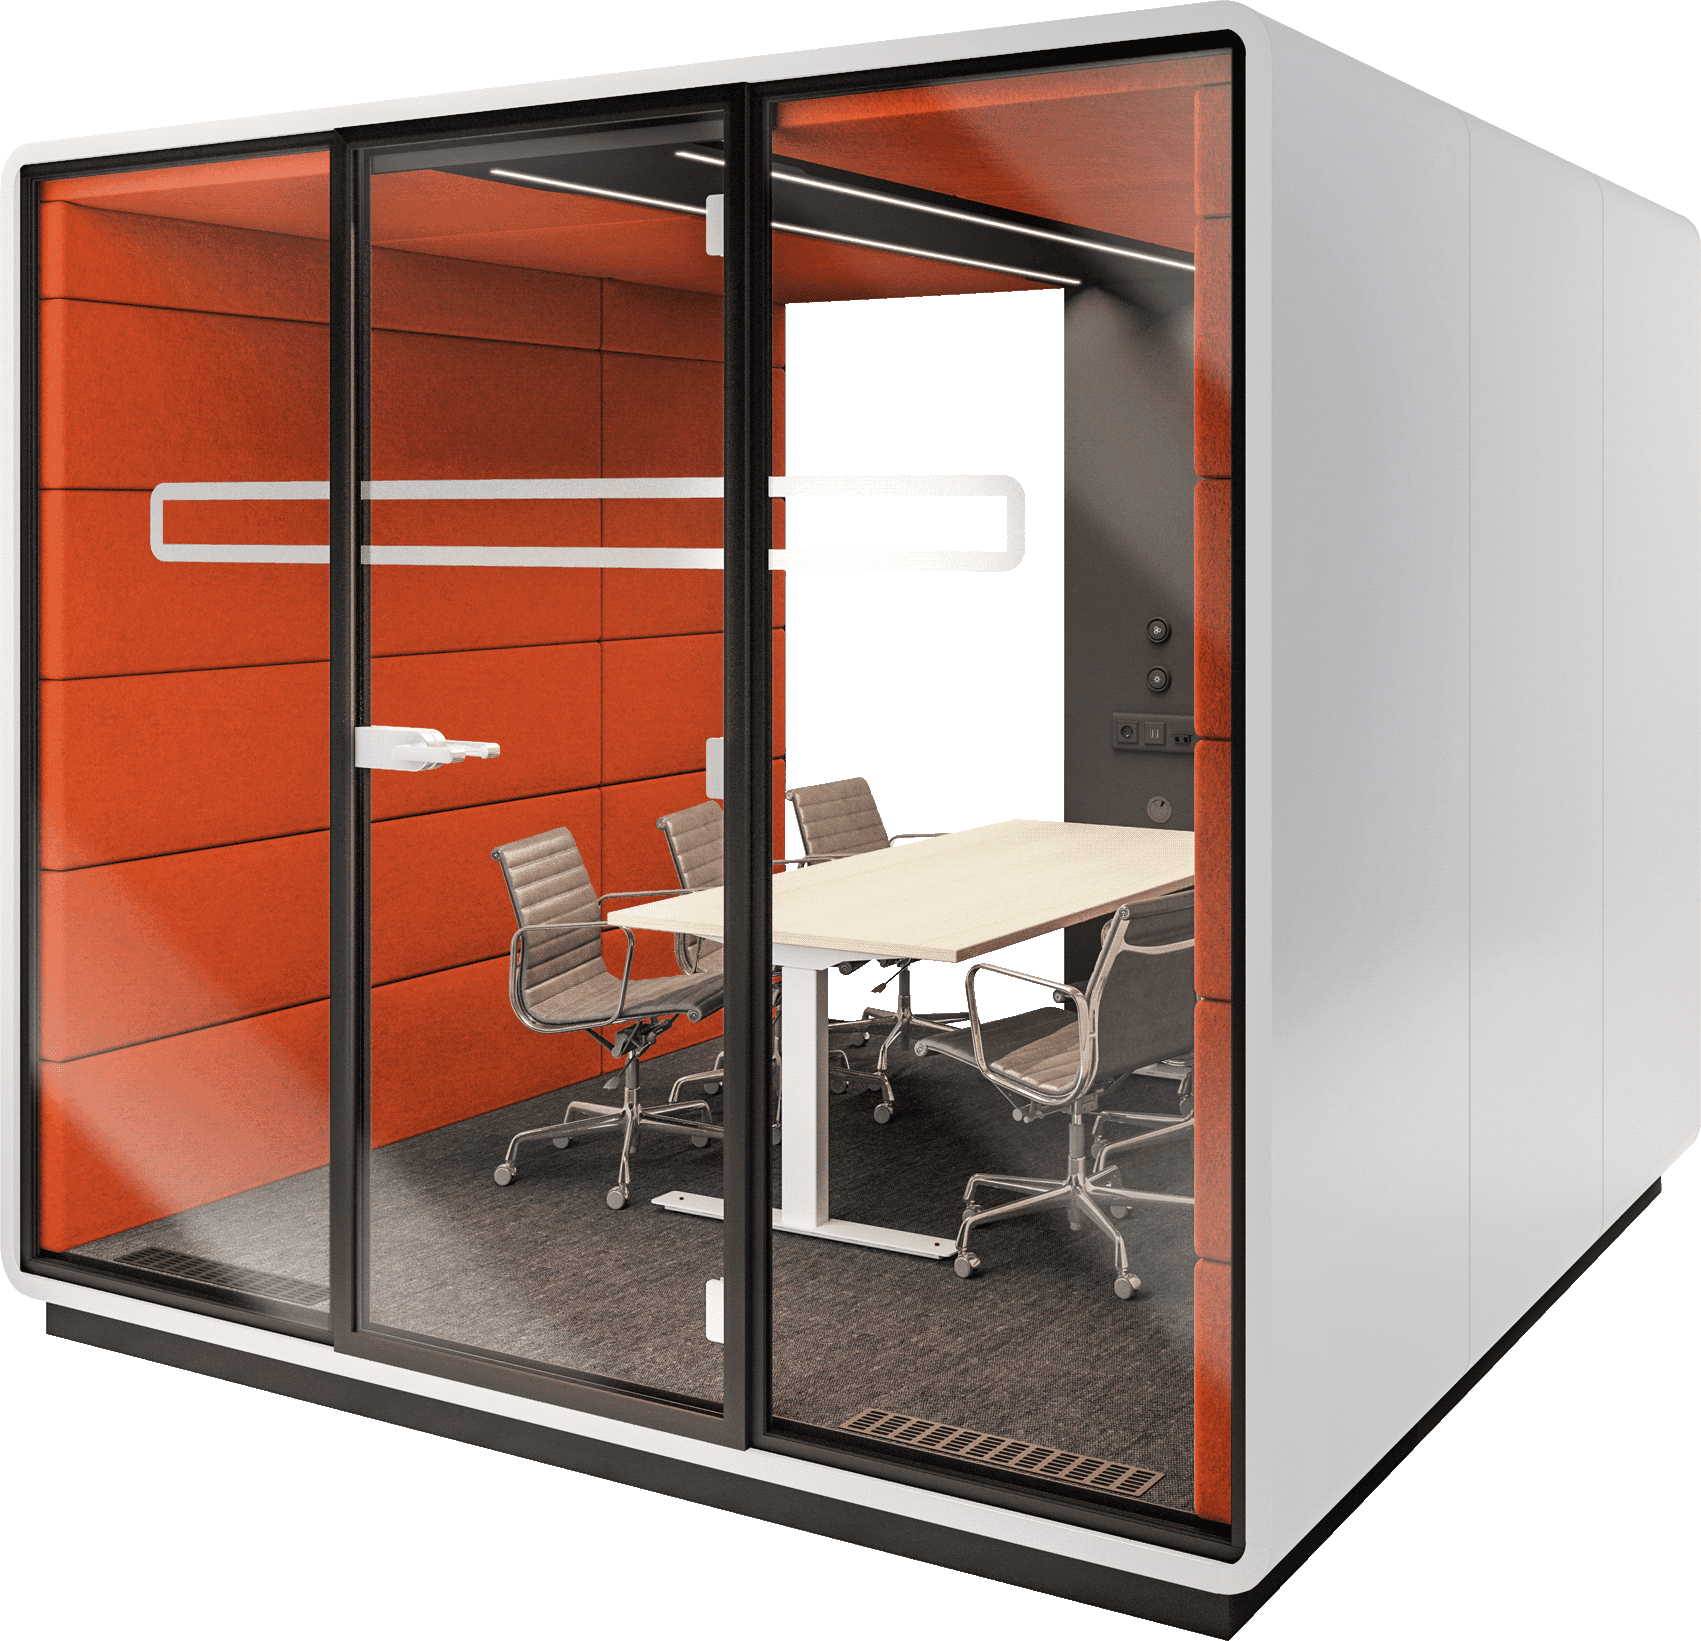 Work-box xxl for the office